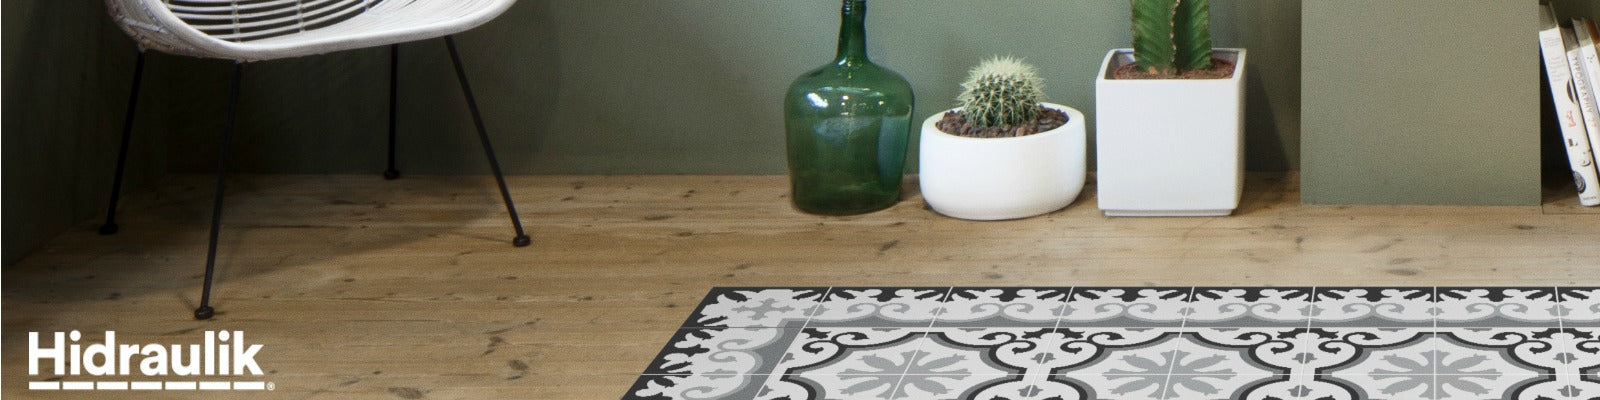 Hidraulik placemats and rugs available online at Sportique.